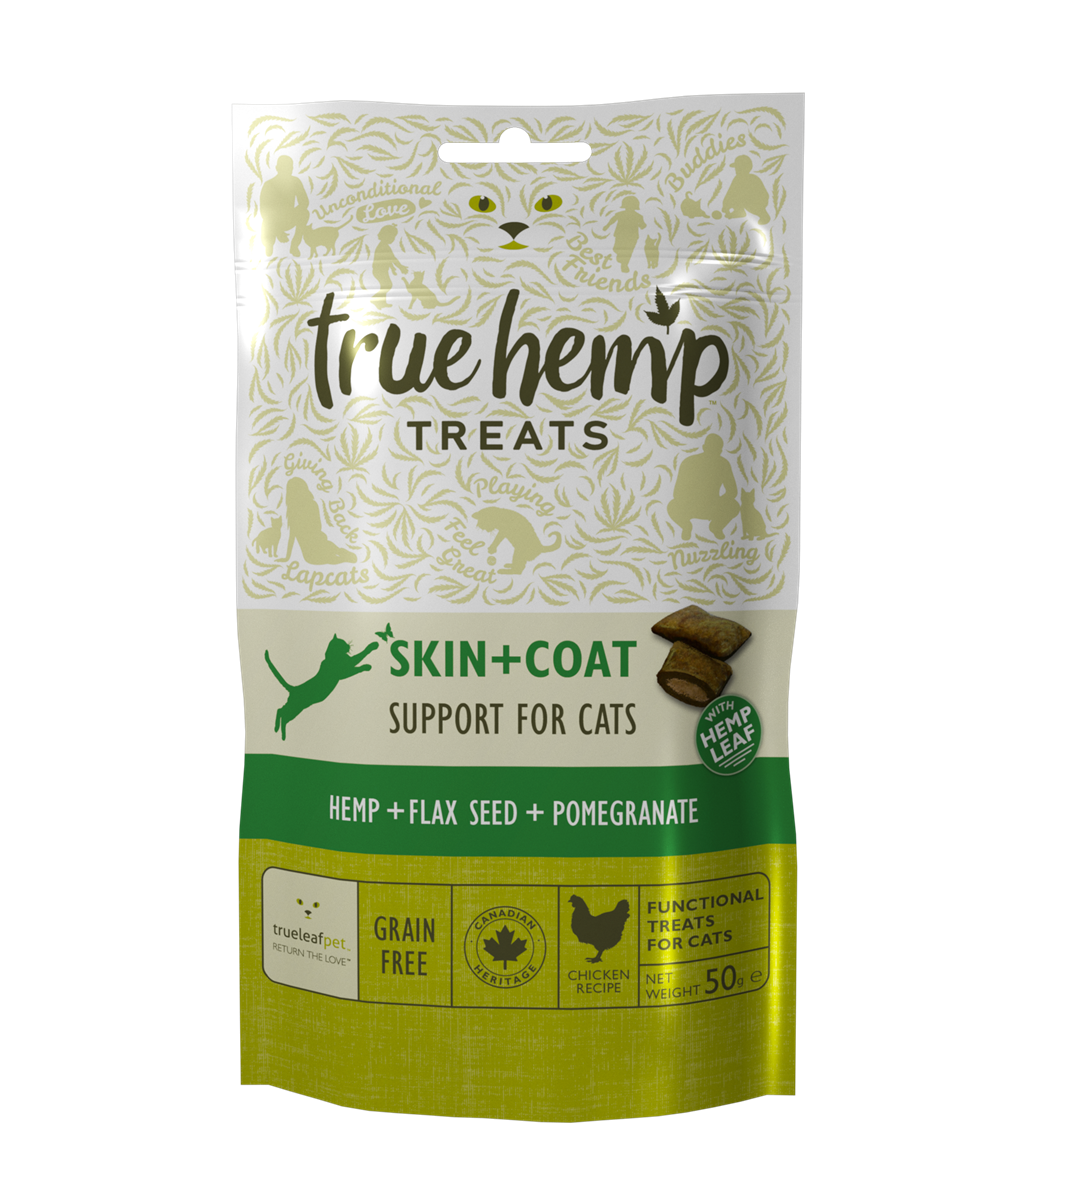 TOMT FRA LEVERANDØR-True Hemp Skin + Coat CAT treats